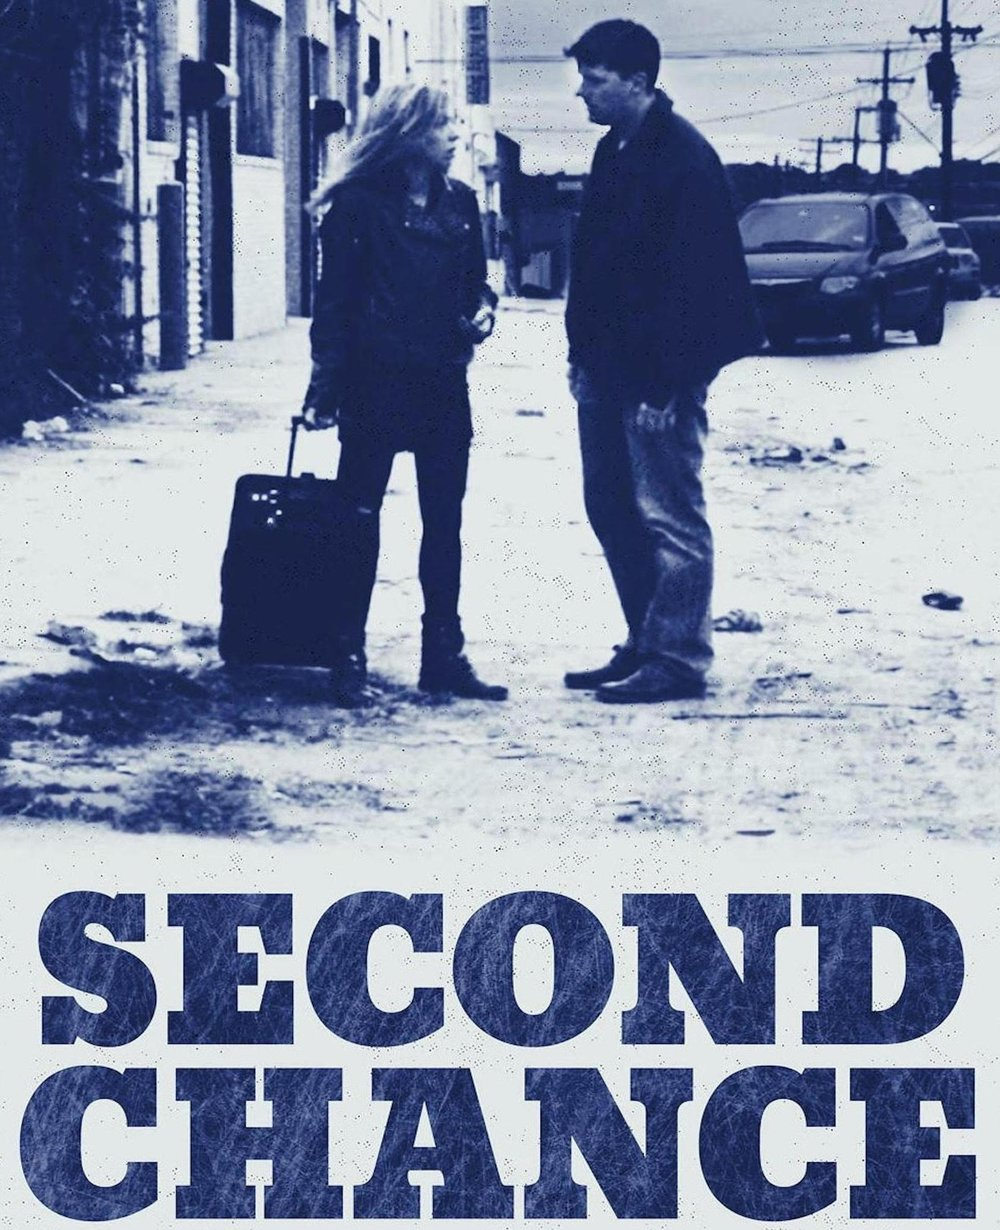 SECOND CHANCE copy 2.jpg